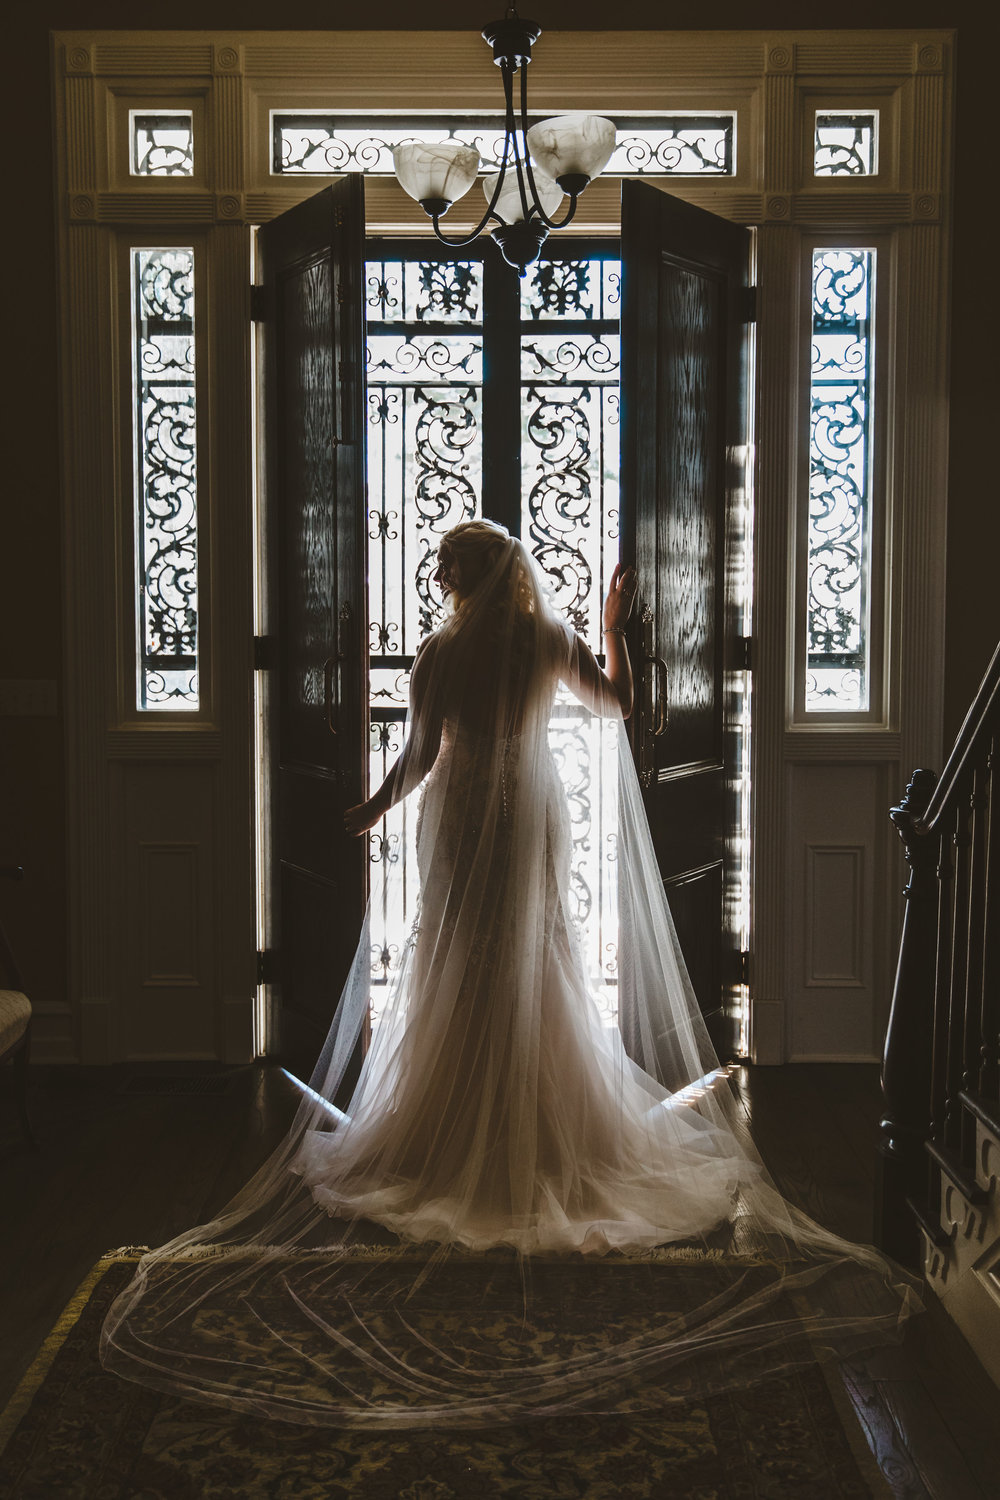 Emily stunned us with her beautiful sparkling gown and cathedral veil.